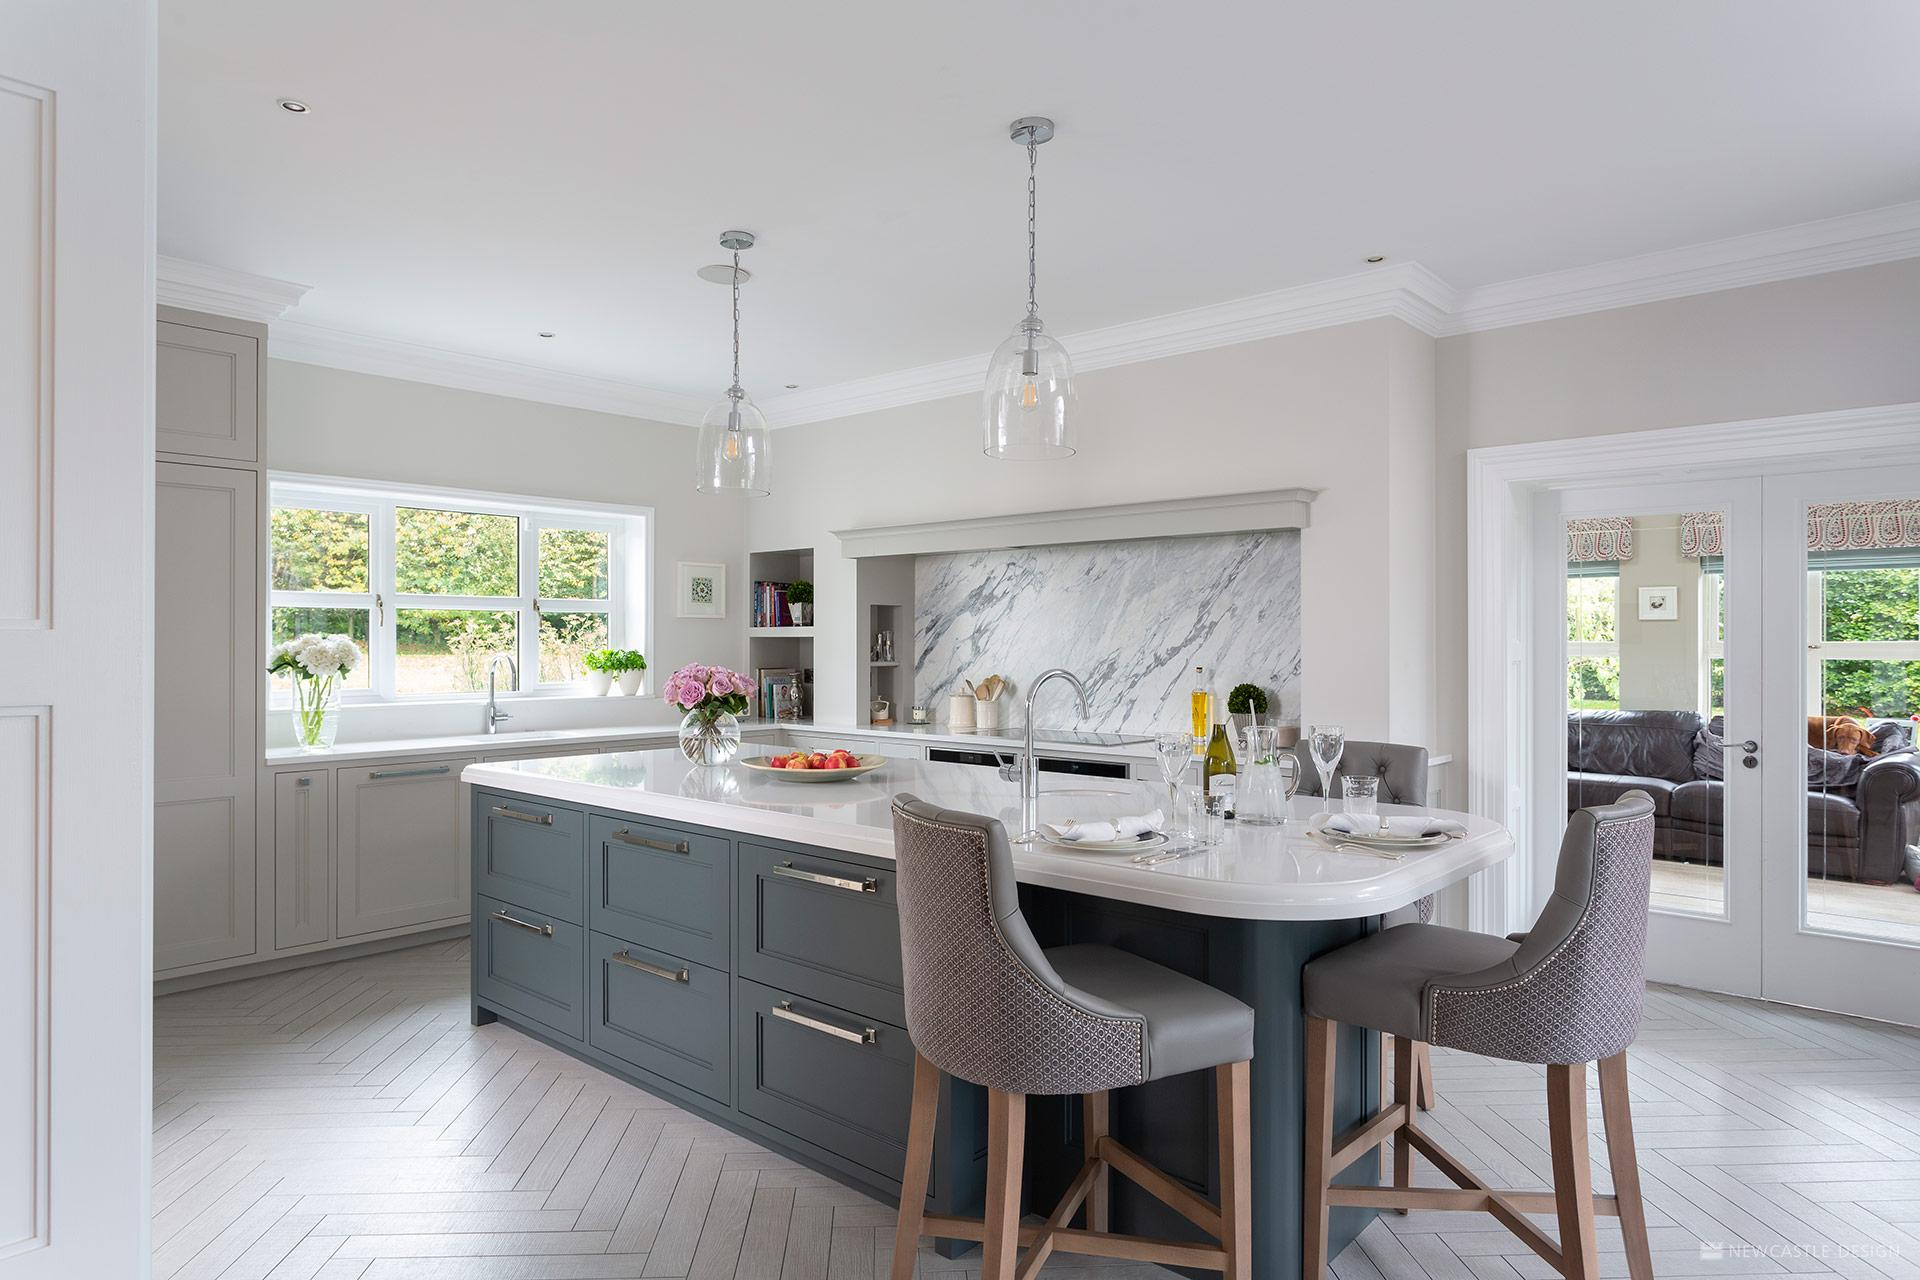 Newcastle Design Kitchen Company Dublin Kitchen Showrooms